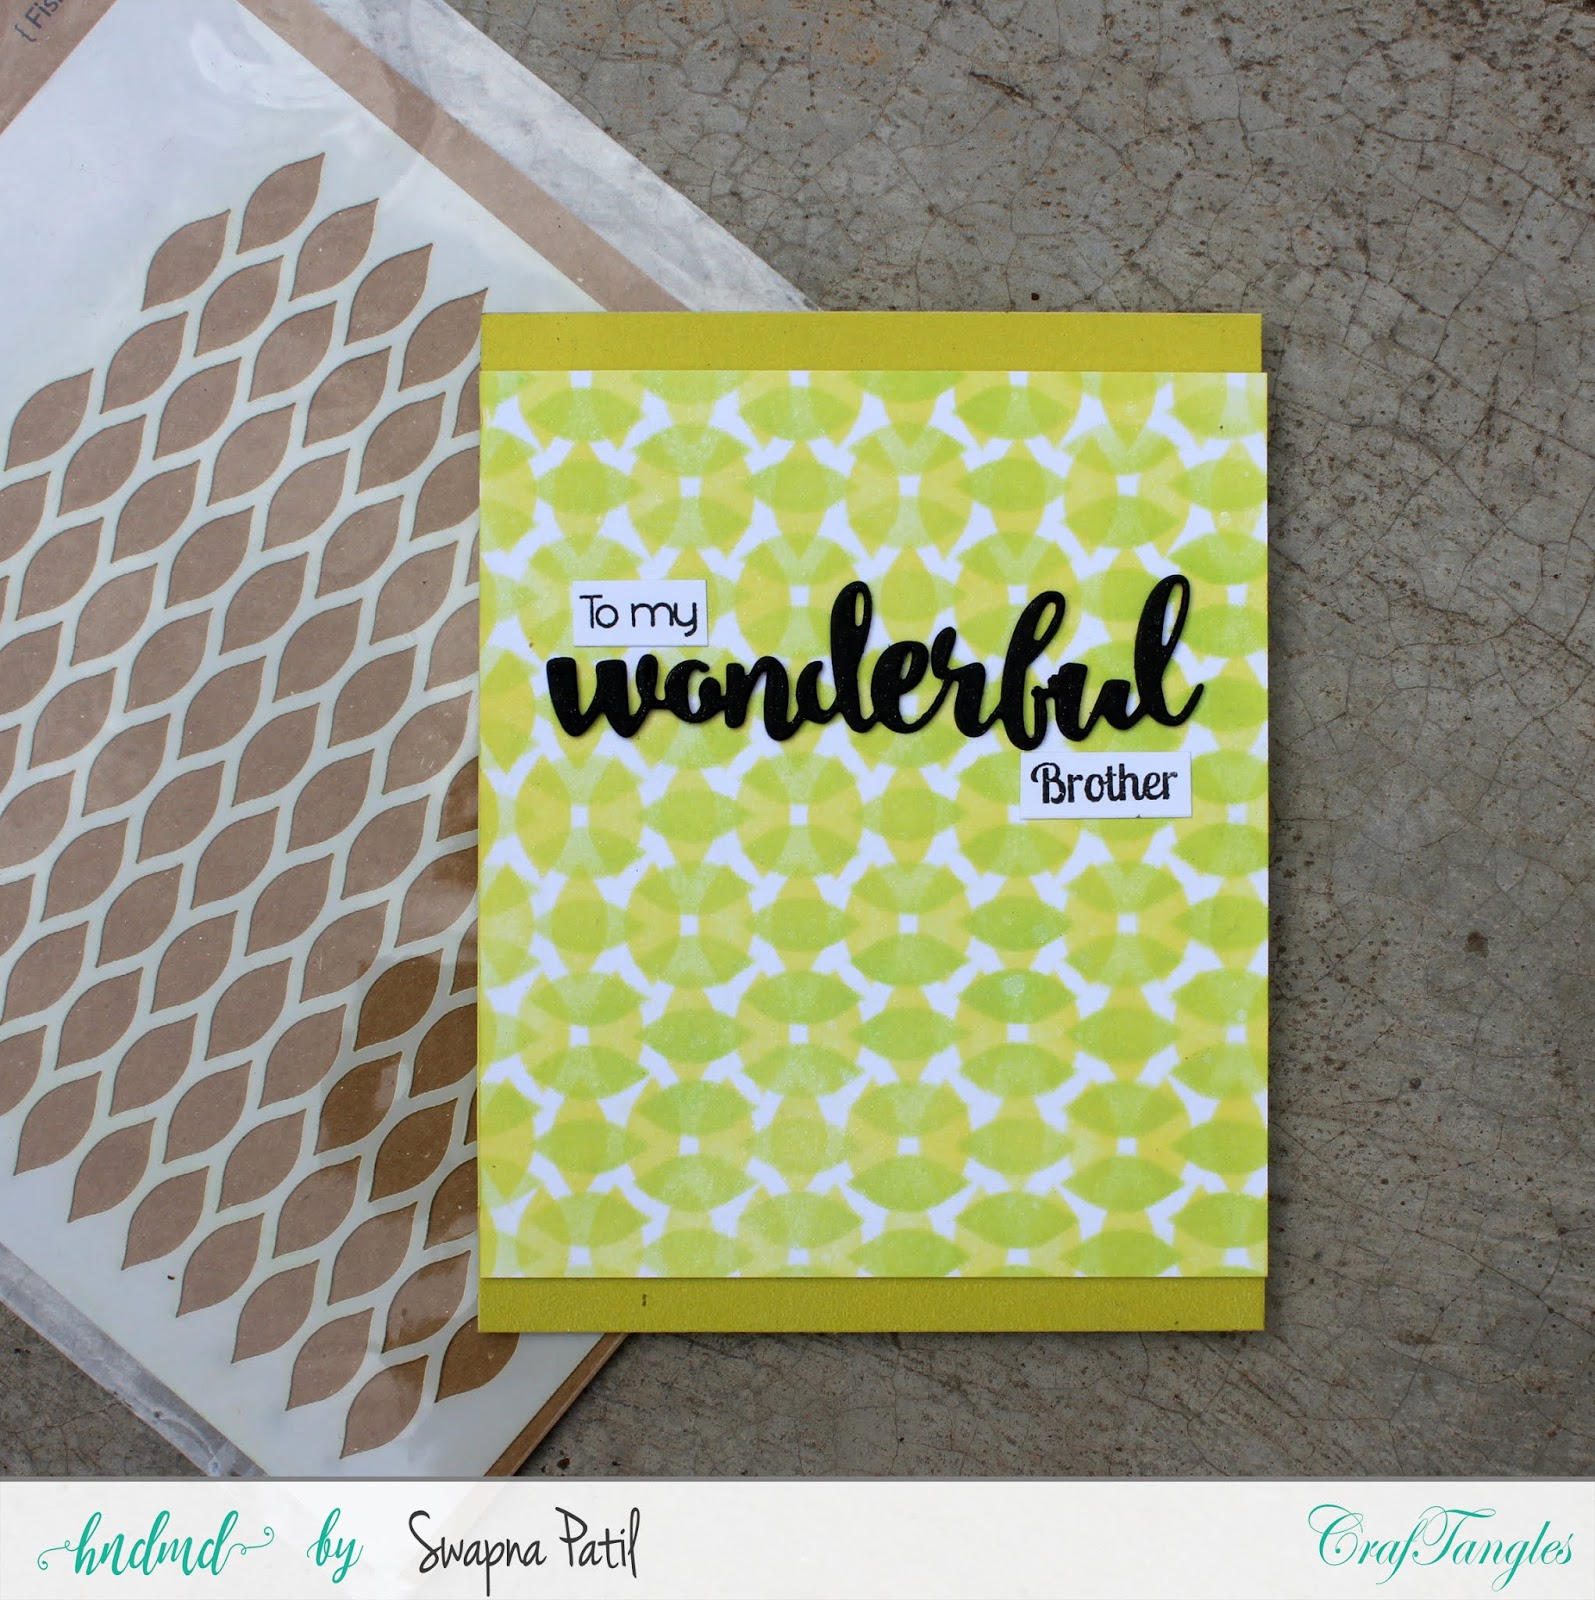 Cards for Brother 2 - Swapna Patil 3